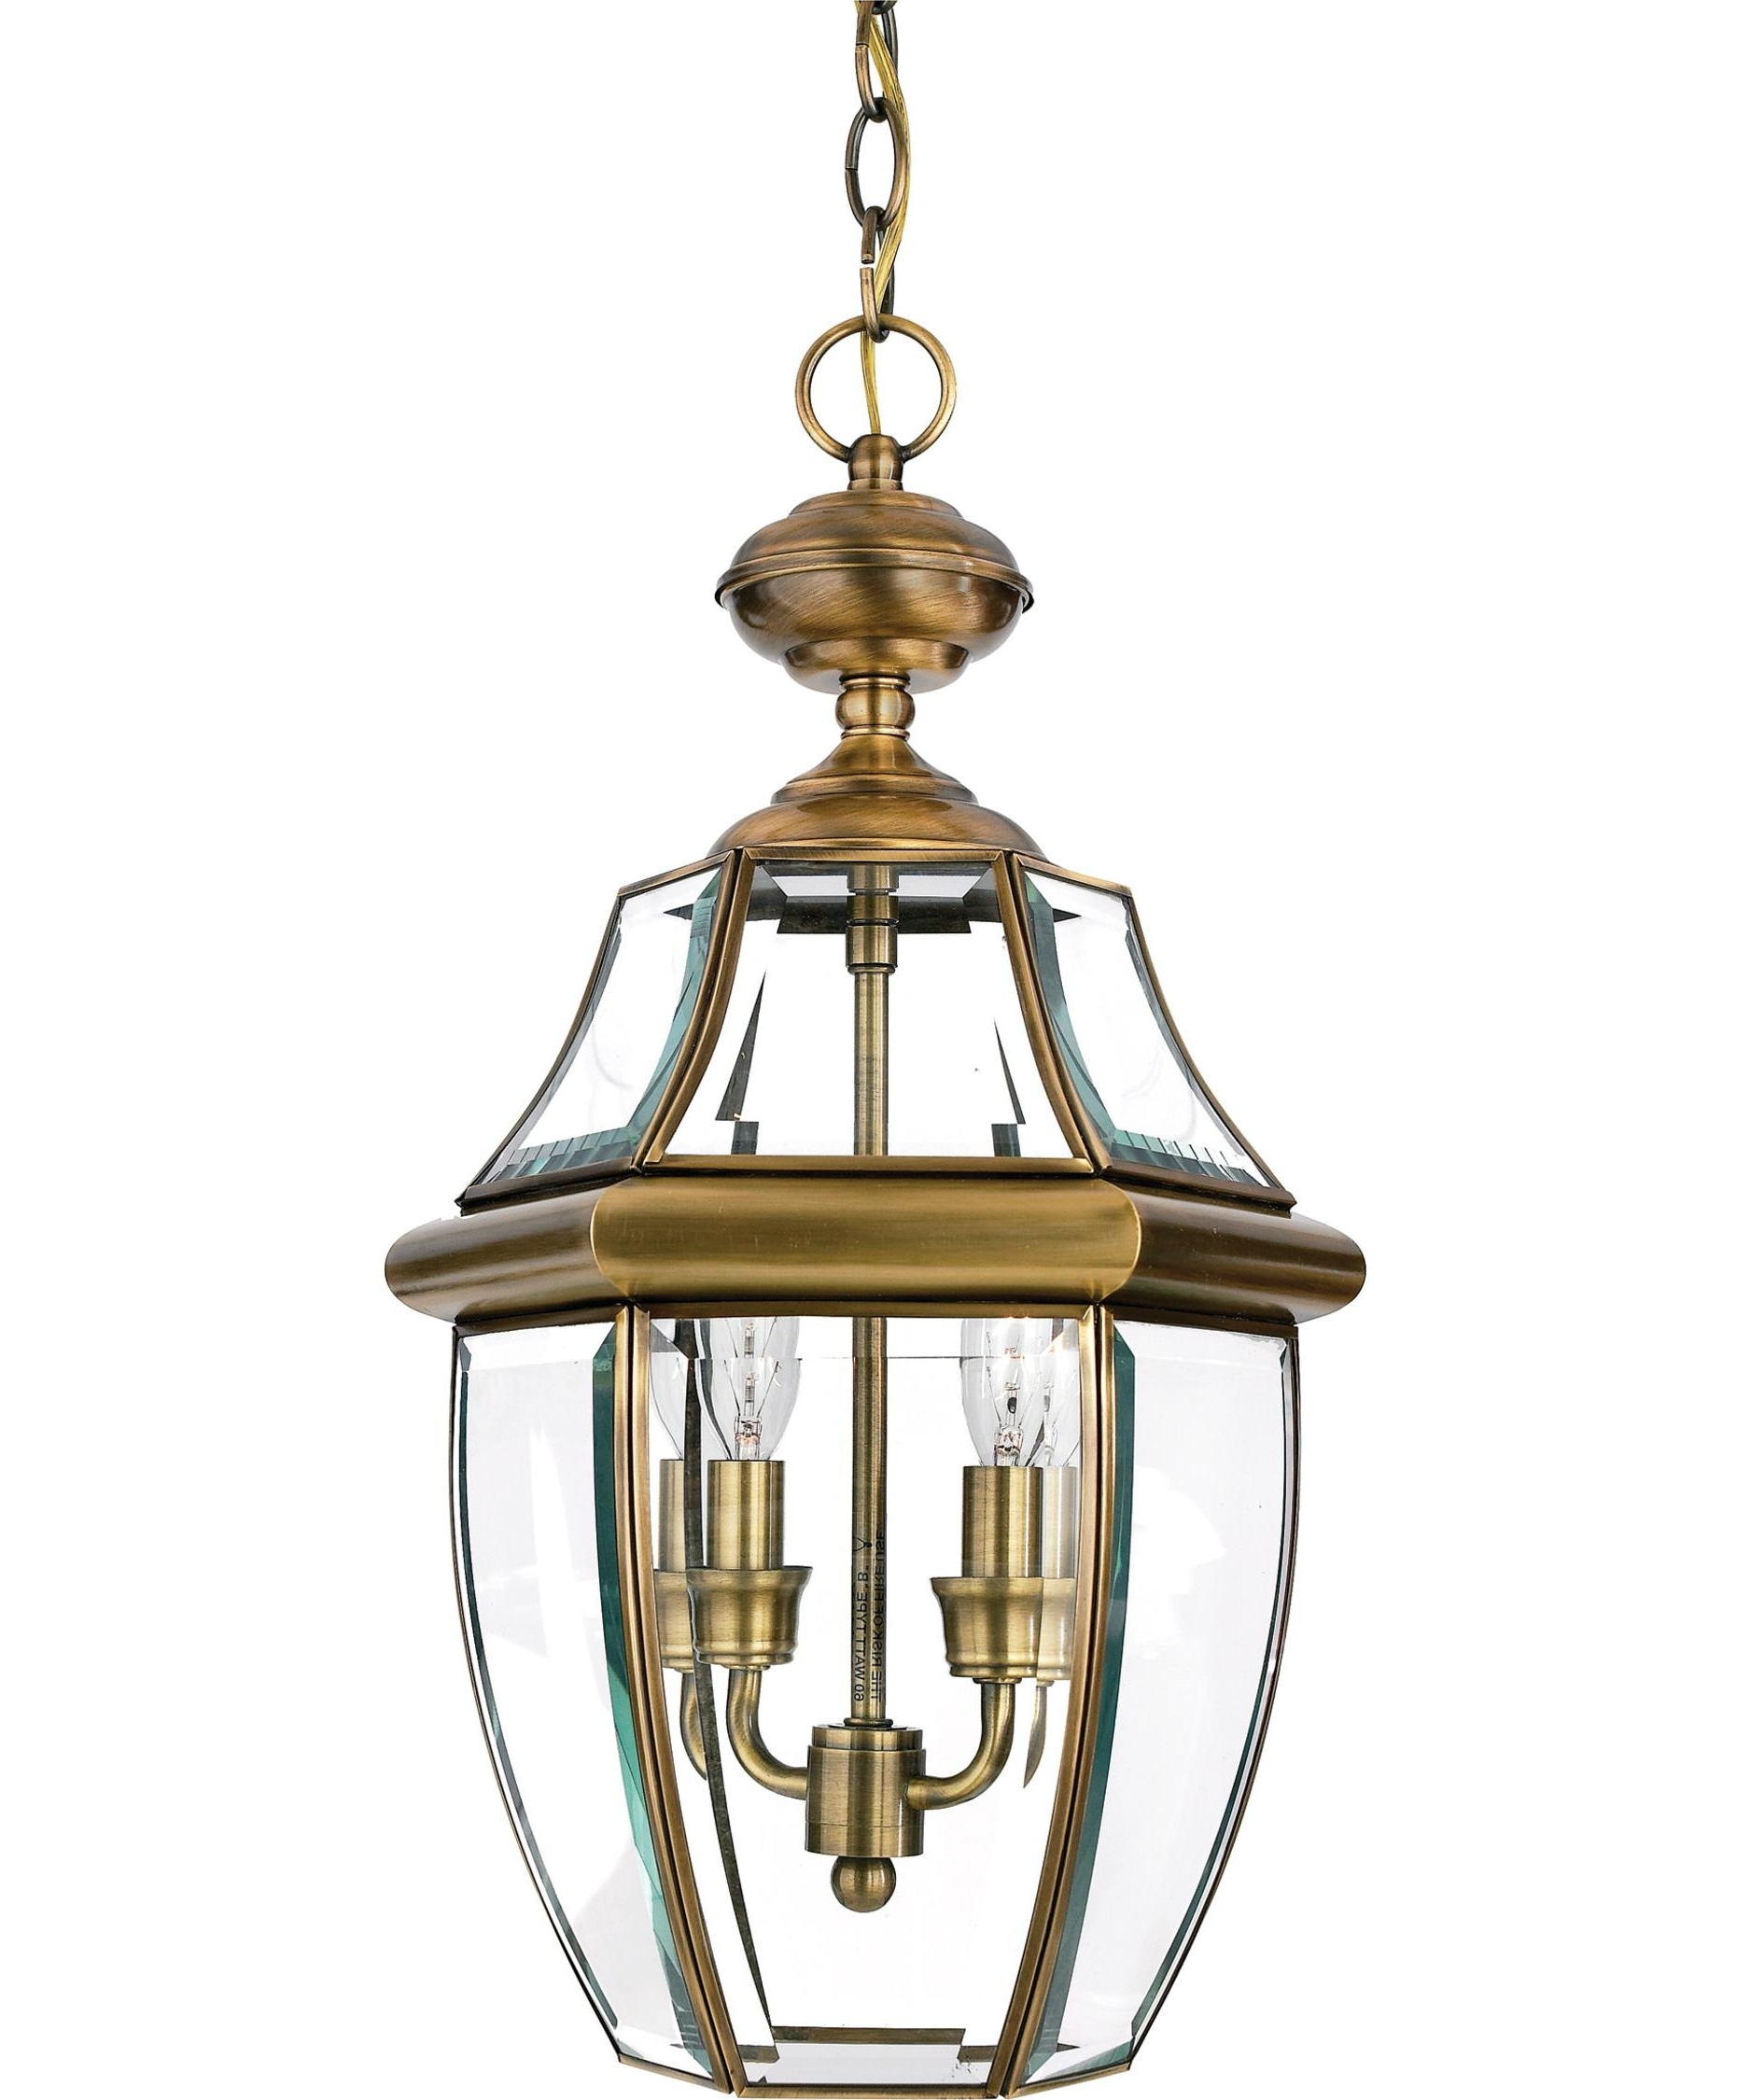 Quoizel Ny1178 Newbury 10 Inch Wide 2 Light Outdoor Hanging Lantern Intended For Preferred Quoizel Outdoor Hanging Lights (Gallery 4 of 20)